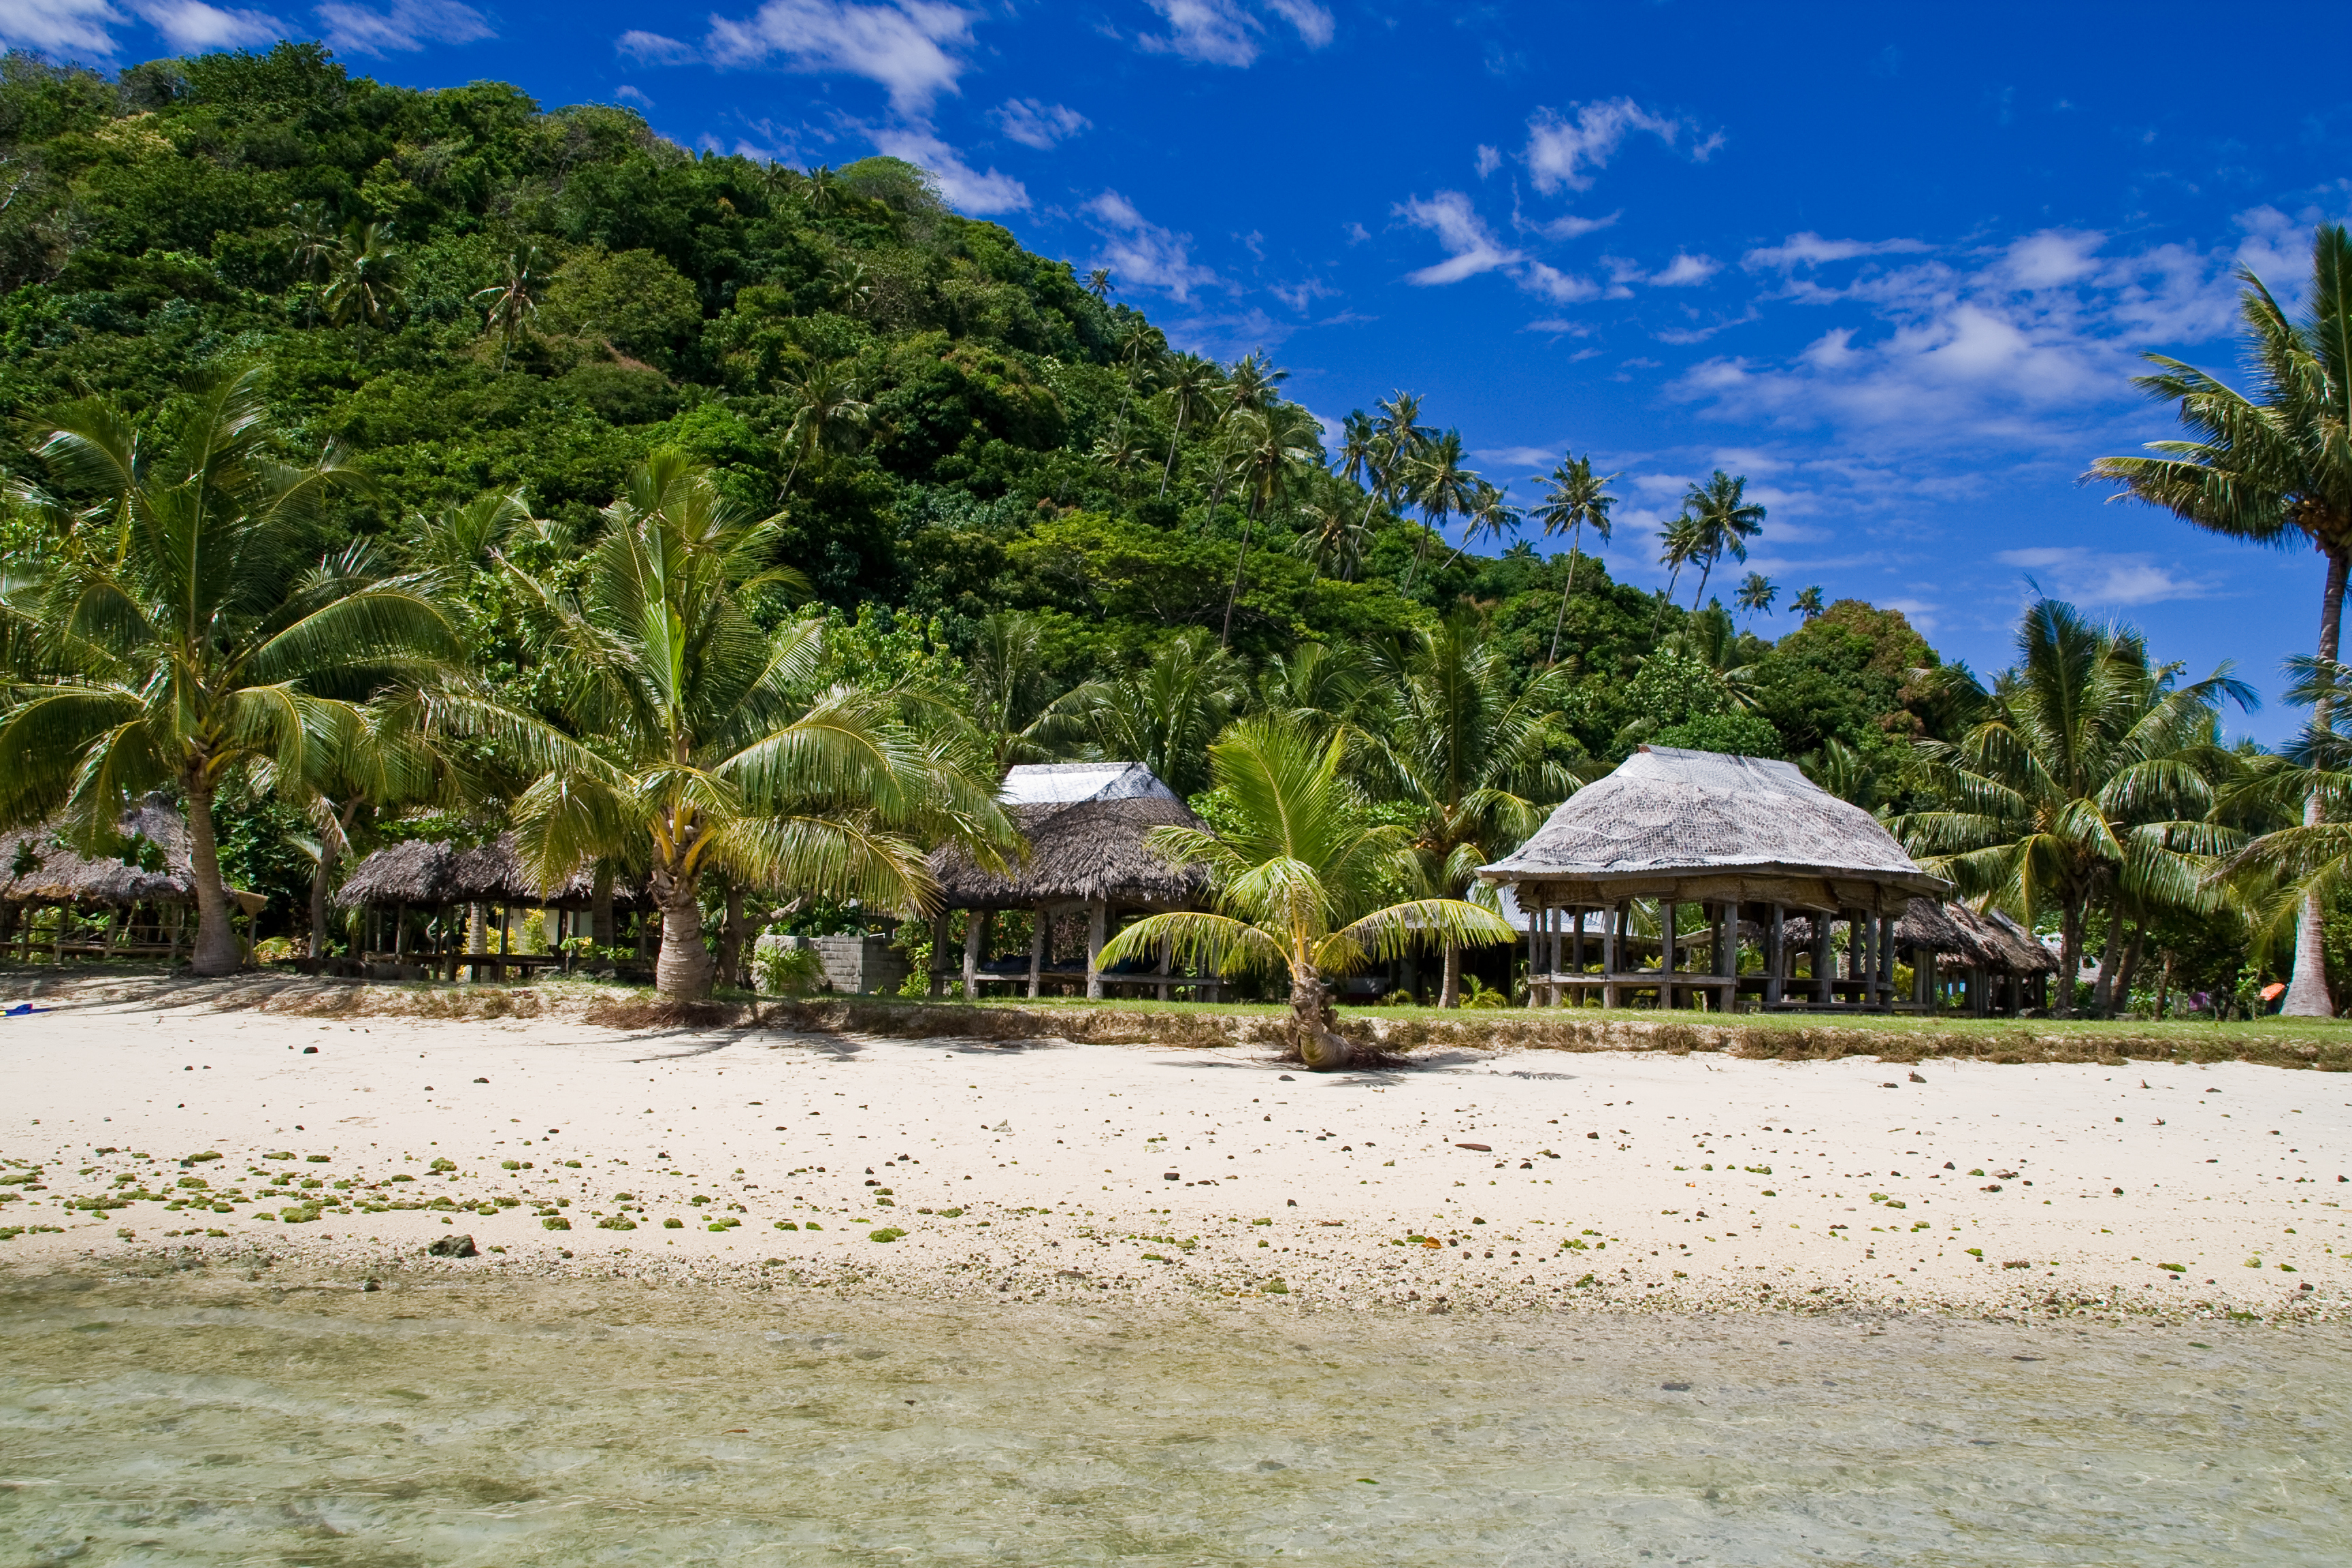 View of samoa's rainforest from the beach